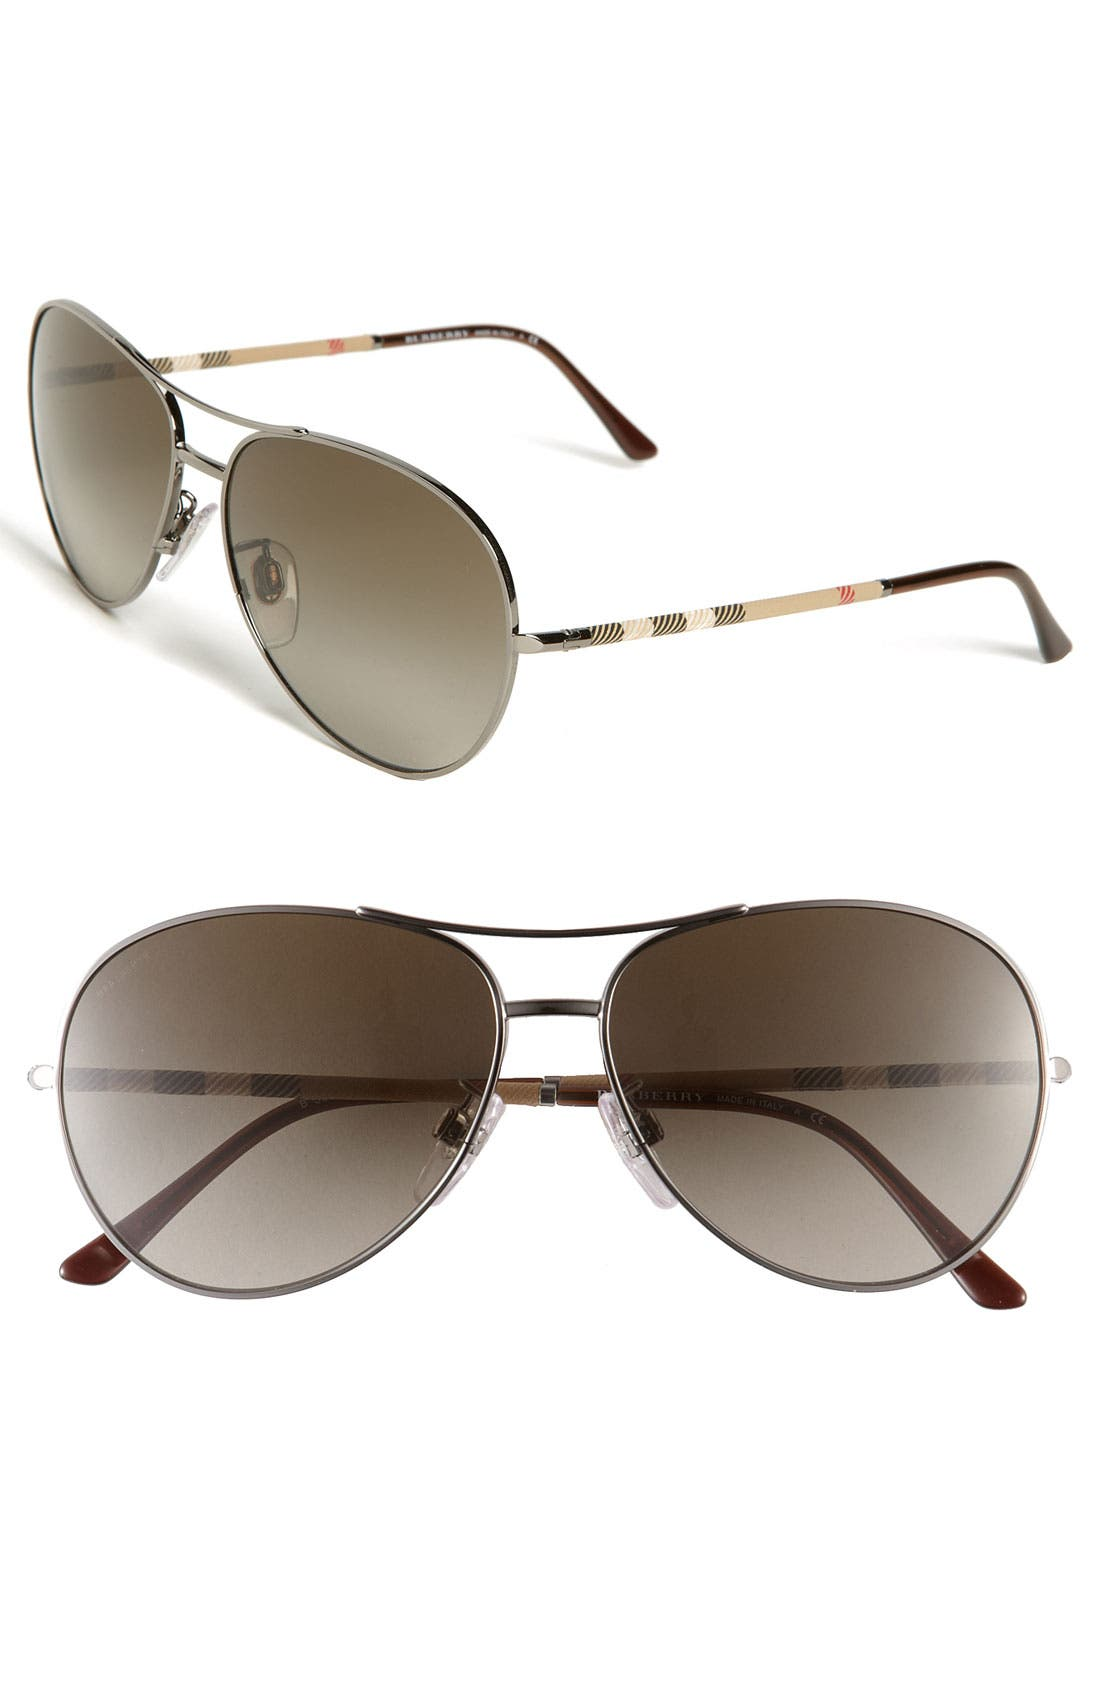 Main Image - Burberry Metal Aviator Sunglasses